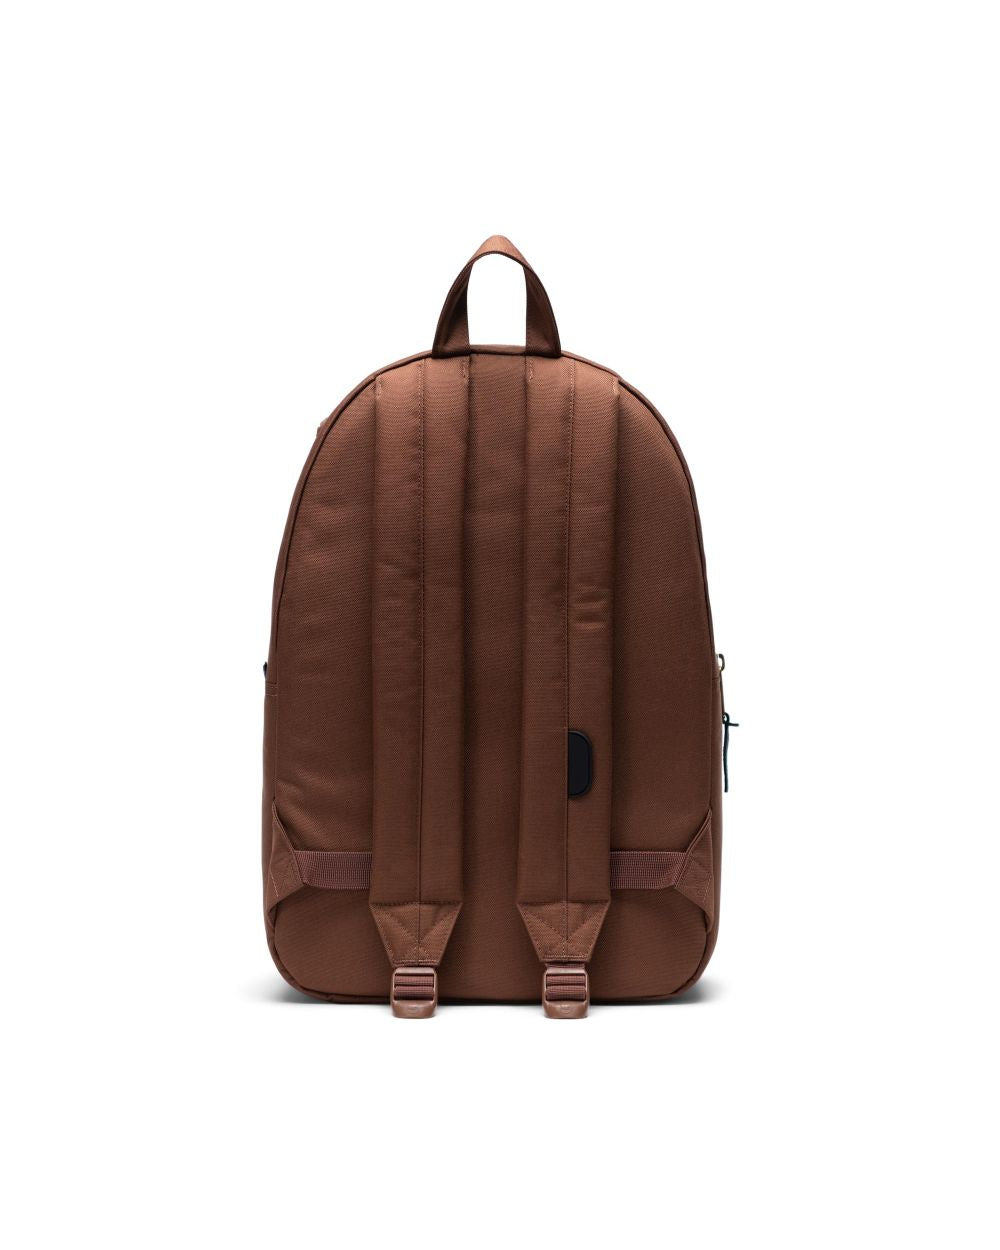 SETTLEMENT BACKPACK - SADDLE BROWN